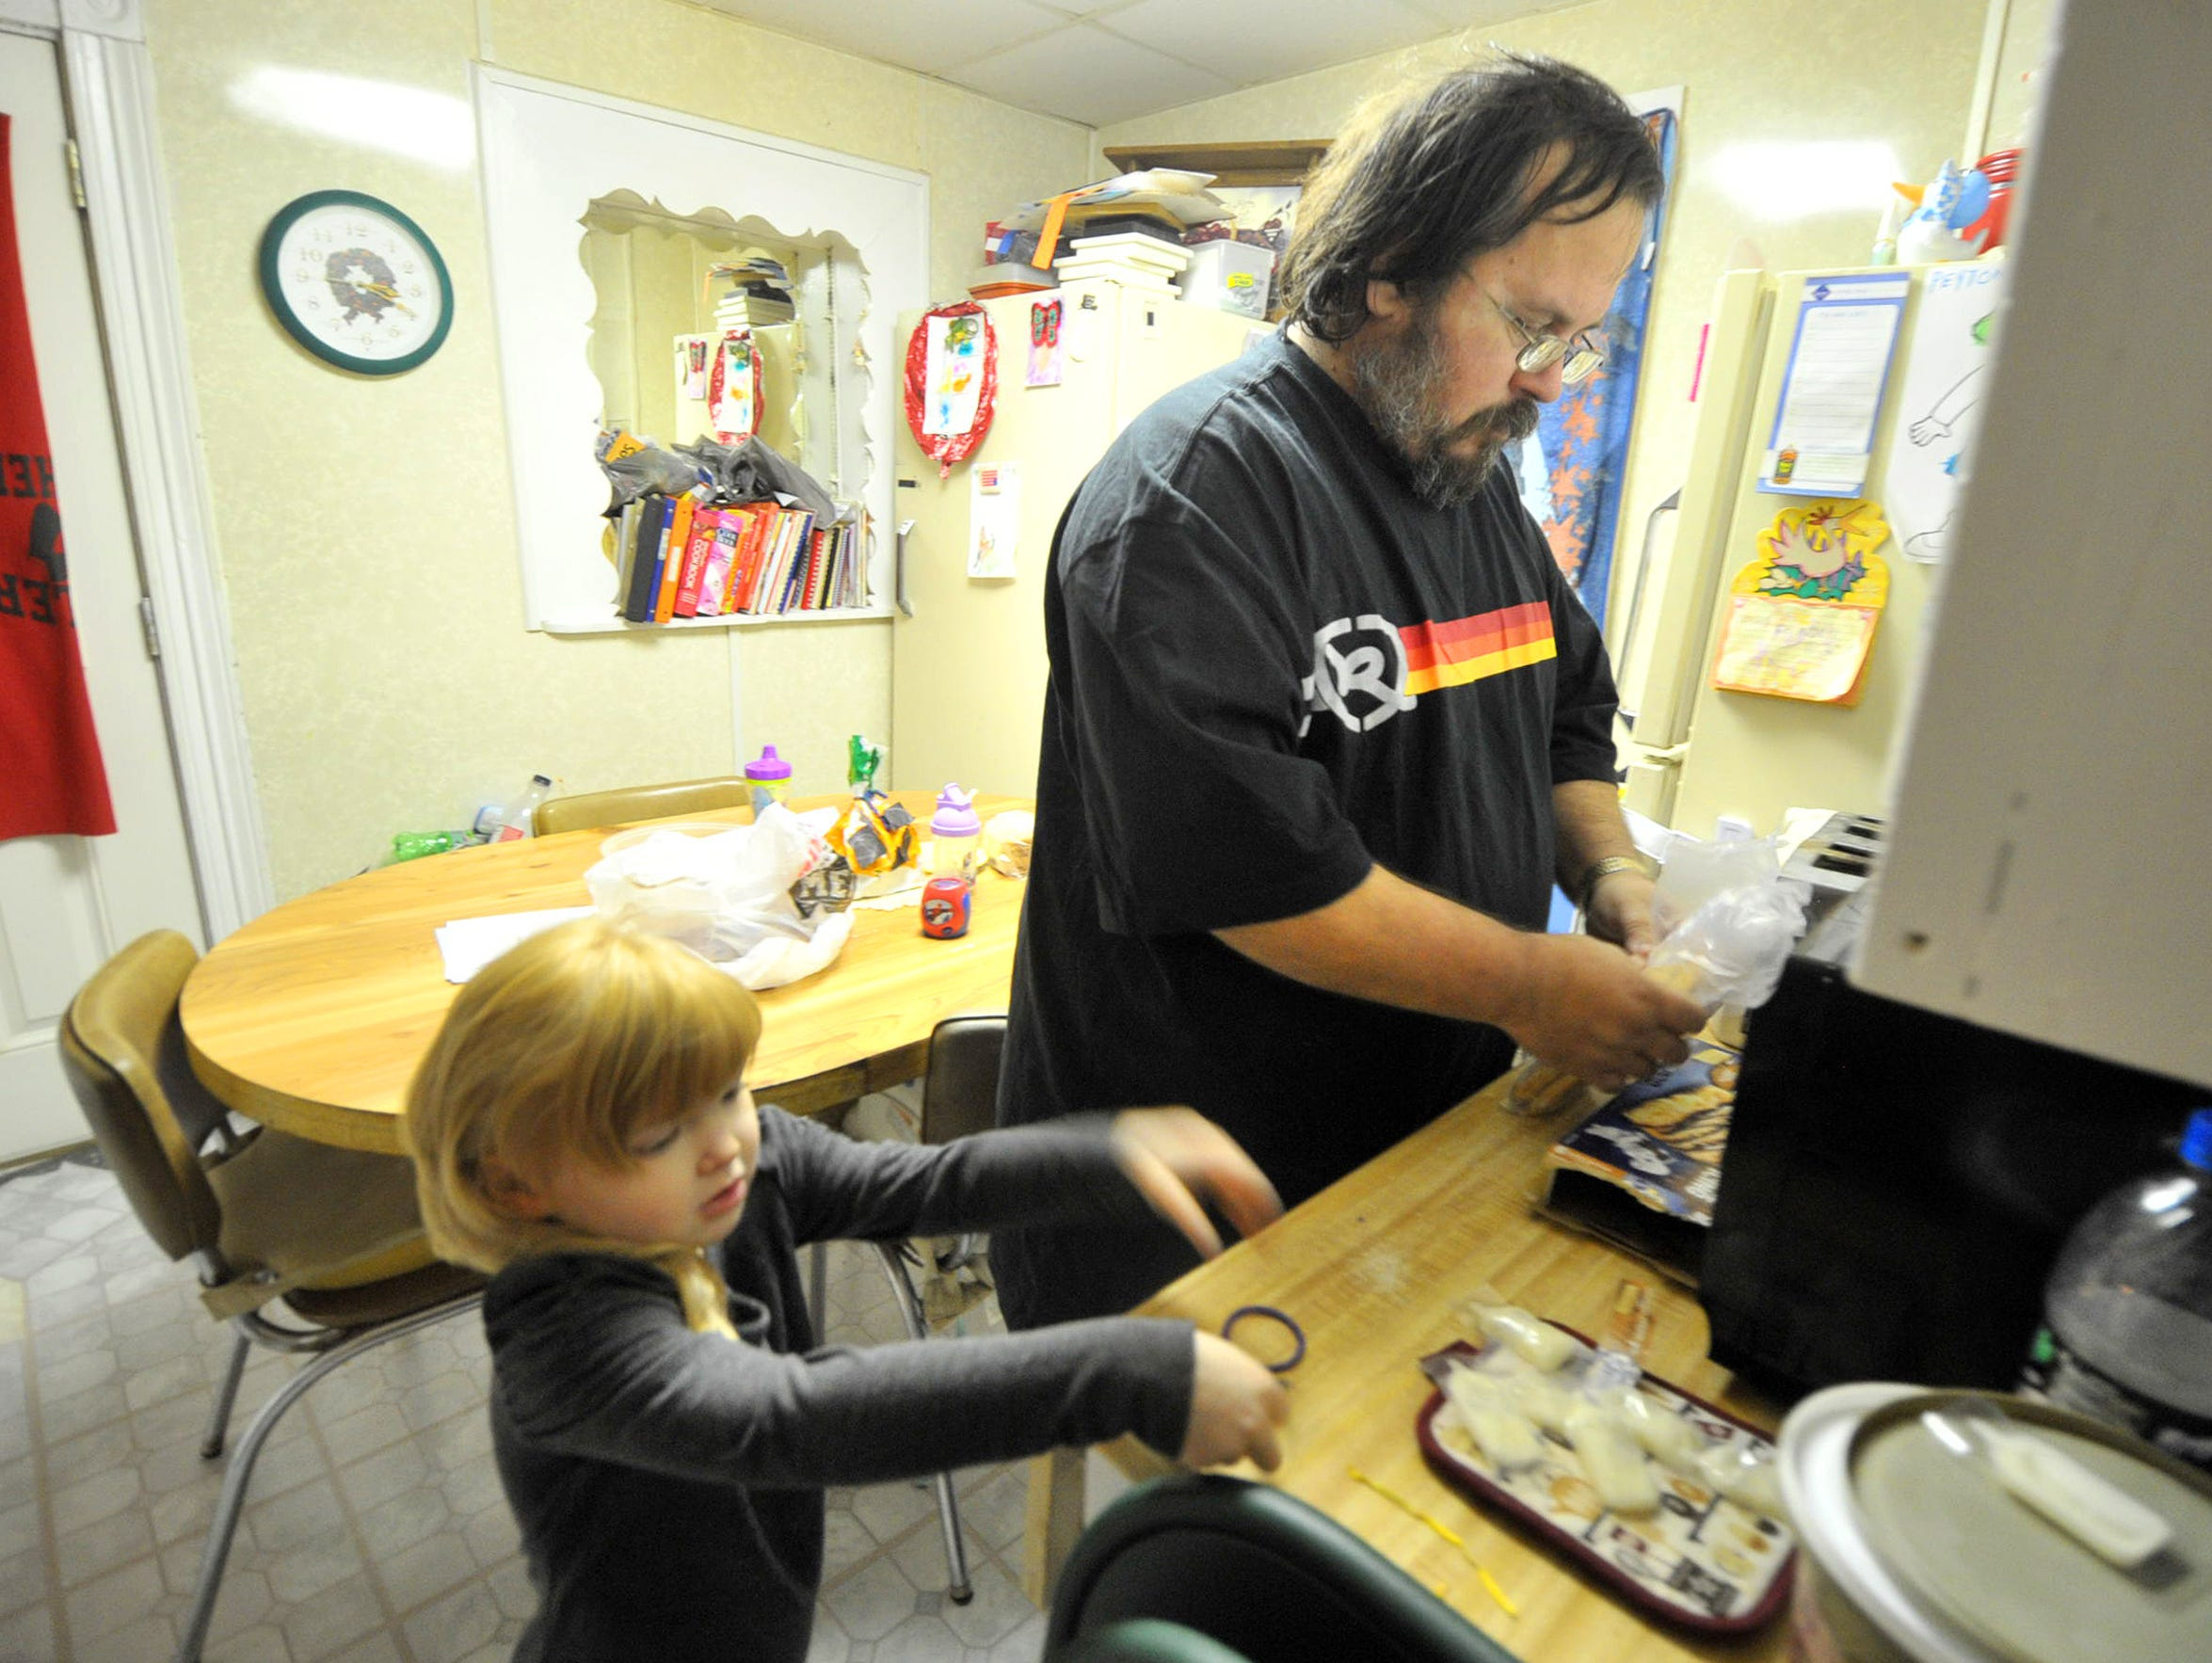 Clint Worden and his daughter Peyton make some snacks